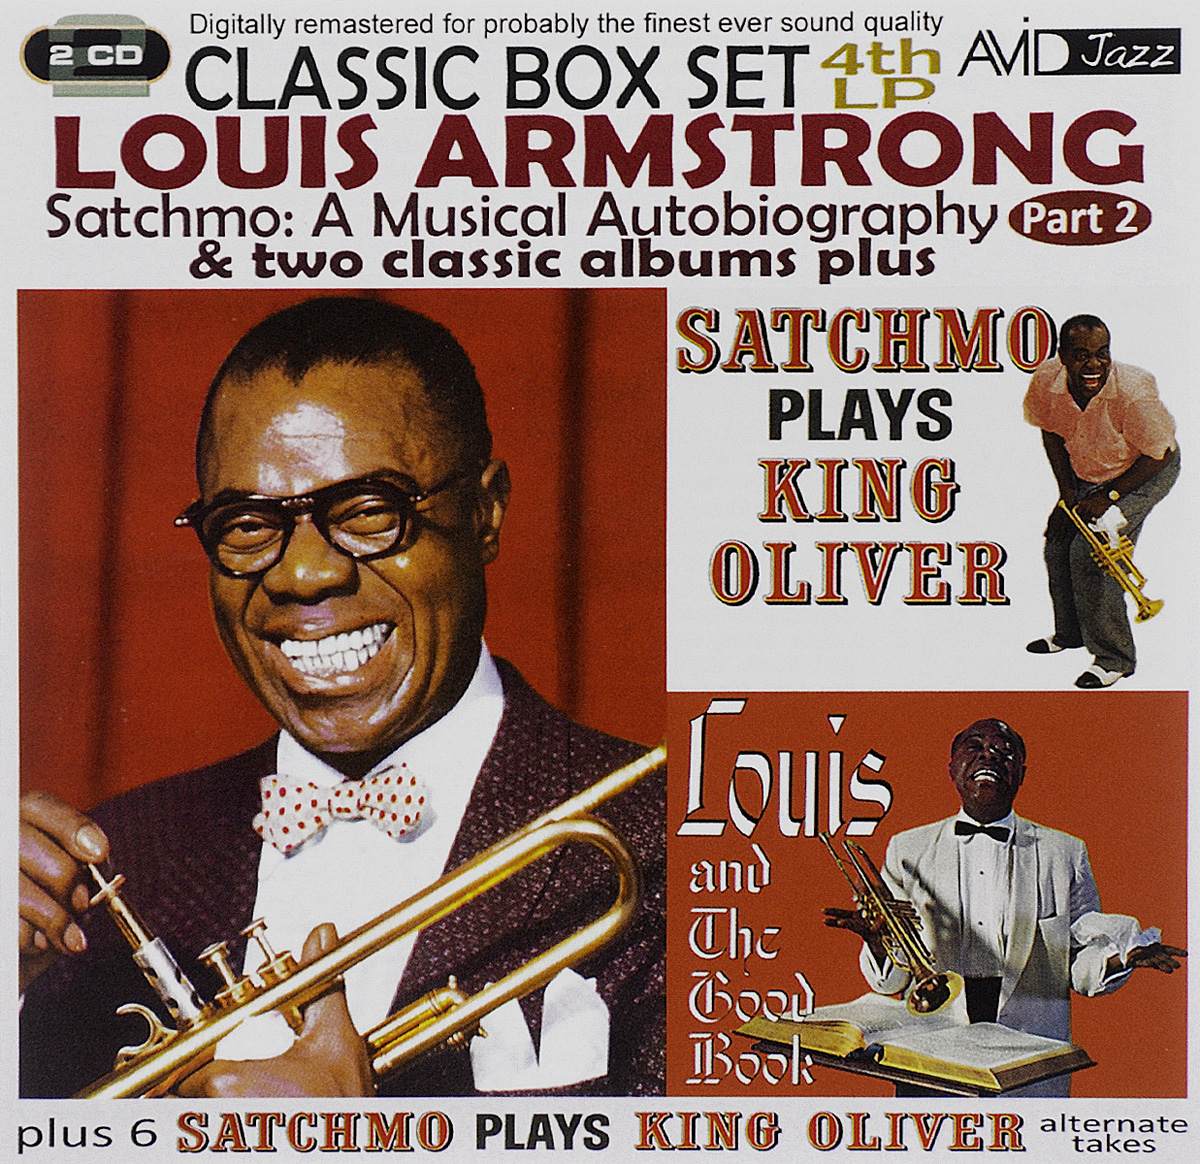 Луи Армстронг Avid Jazz. Louis Armstrong. Satchmo. A Musical Autobiography. Part 2. 6 Satchmo Plays King Oliver. Alternate Takes (2 CD) avid dolby surround tools